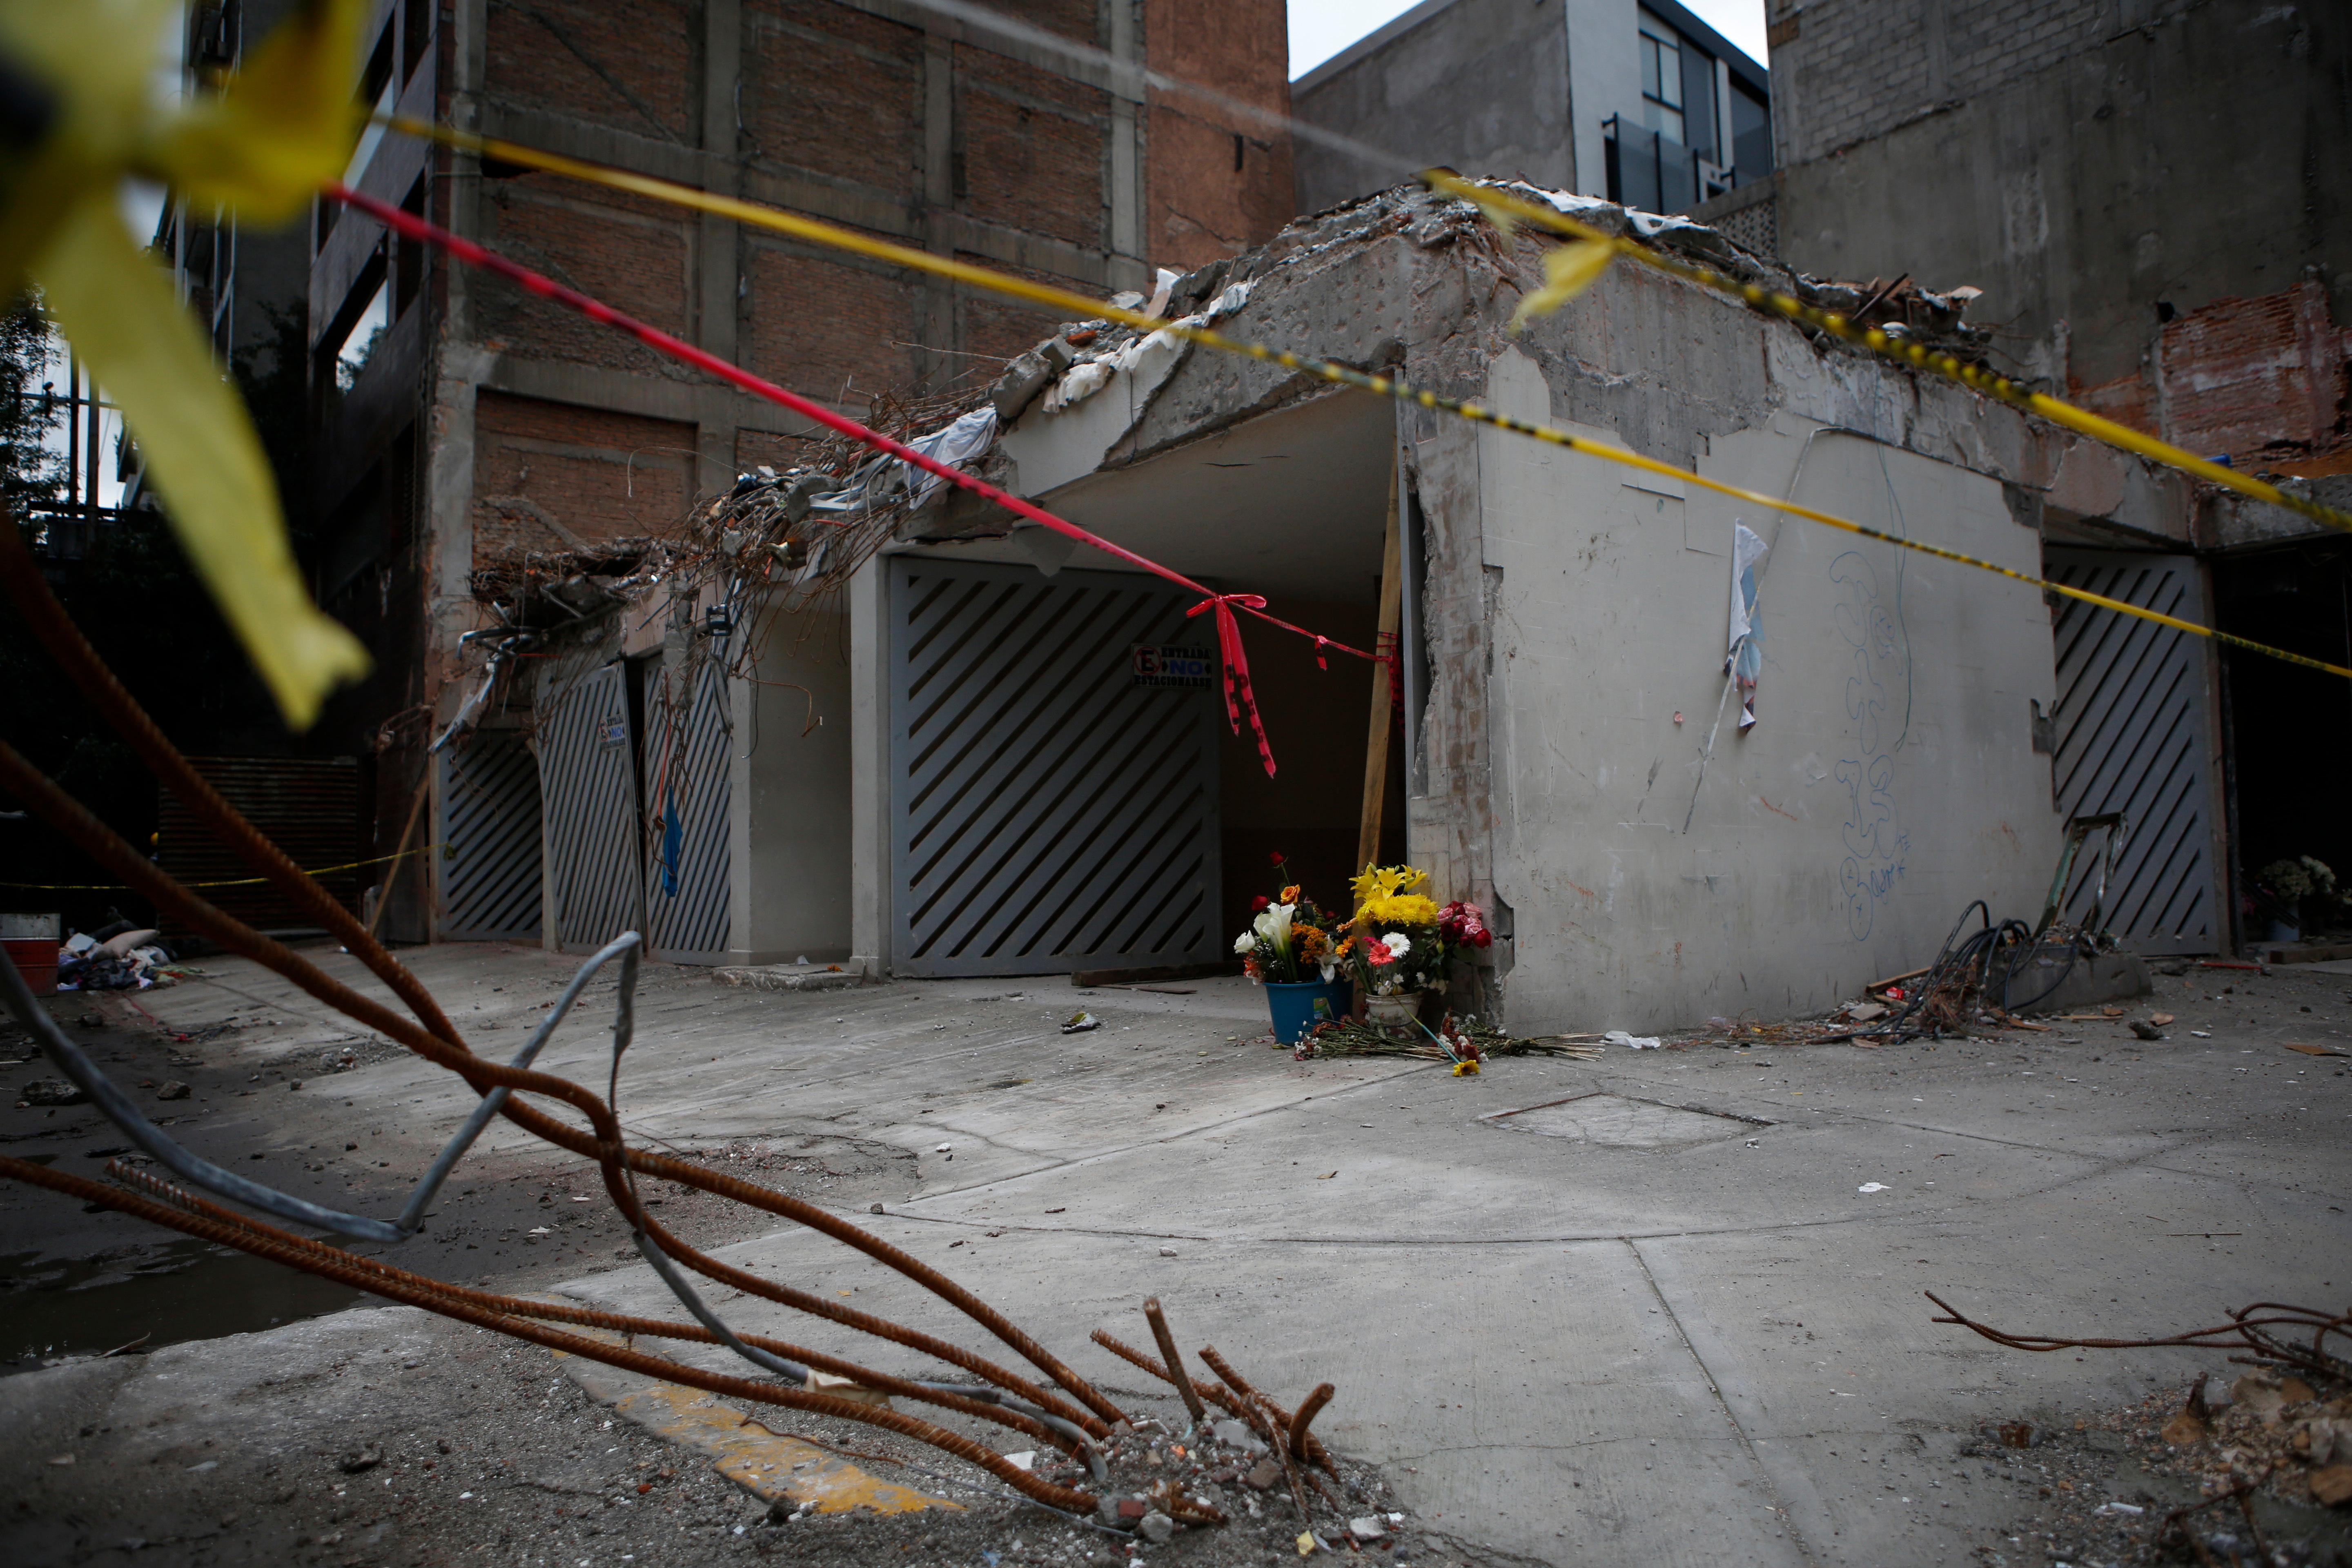 Flowers serve as an informal memorial at what remains of a seven-story apartment building that collapsed at 107 Amsterdam on the corner with Laredo, in the Condesa neighborhood of Mexico City, Friday, Sept. 29, 2017.  (AP Photo/Rebecca Blackwell)